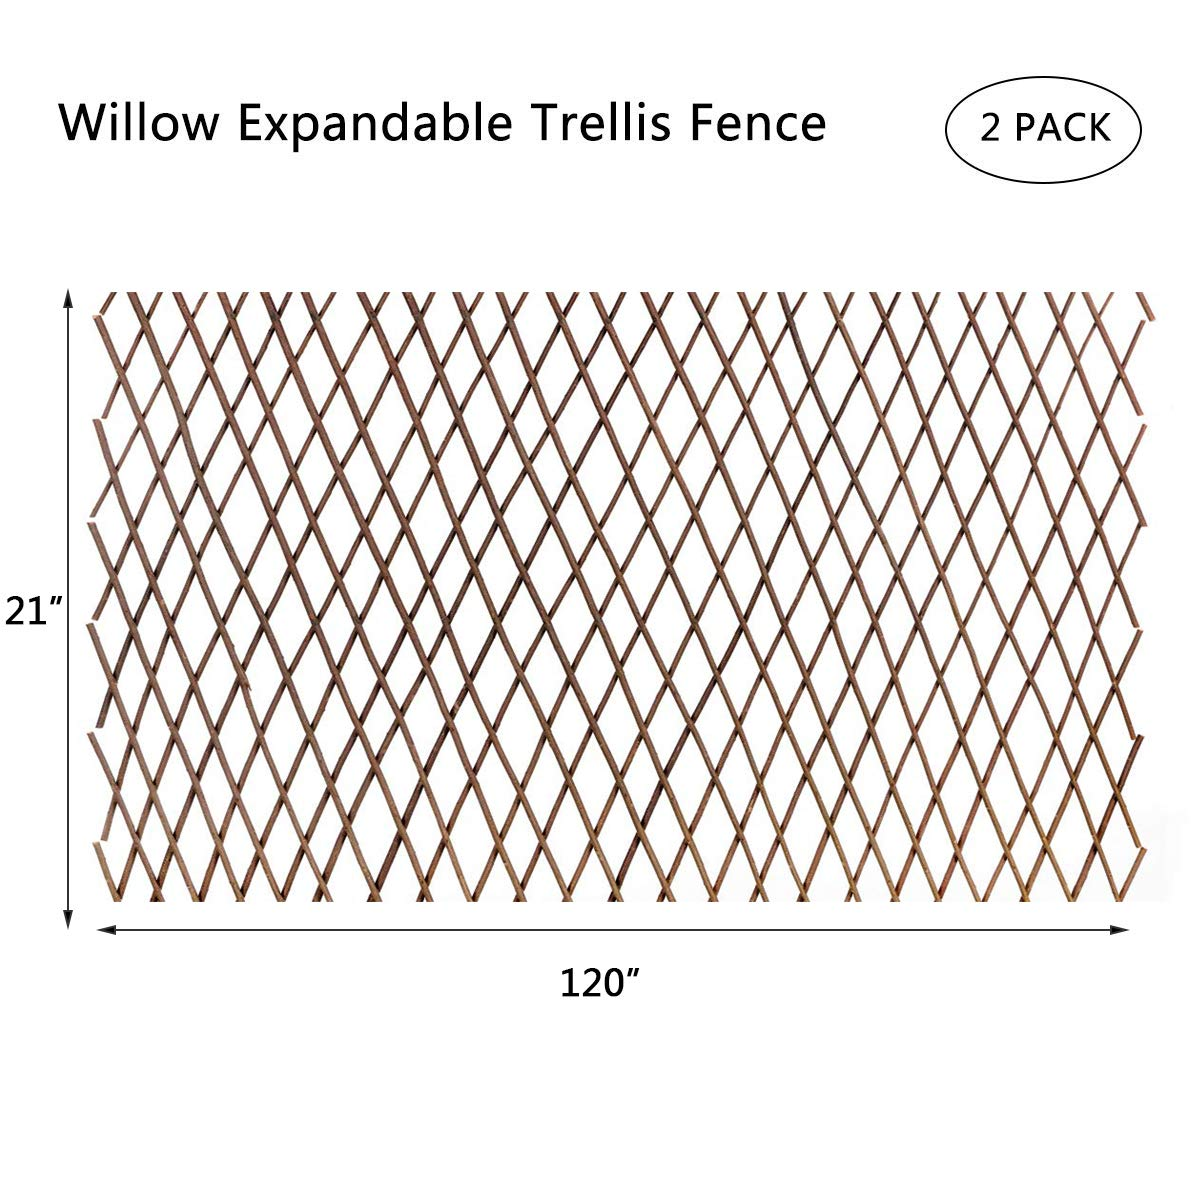 DOEWORKS Expandable Garden Trellis Plant Support Willow Lattice Fence Panel for Climbing Plants Vine Ivy Rose Cucumbers Clematis - 2PACK